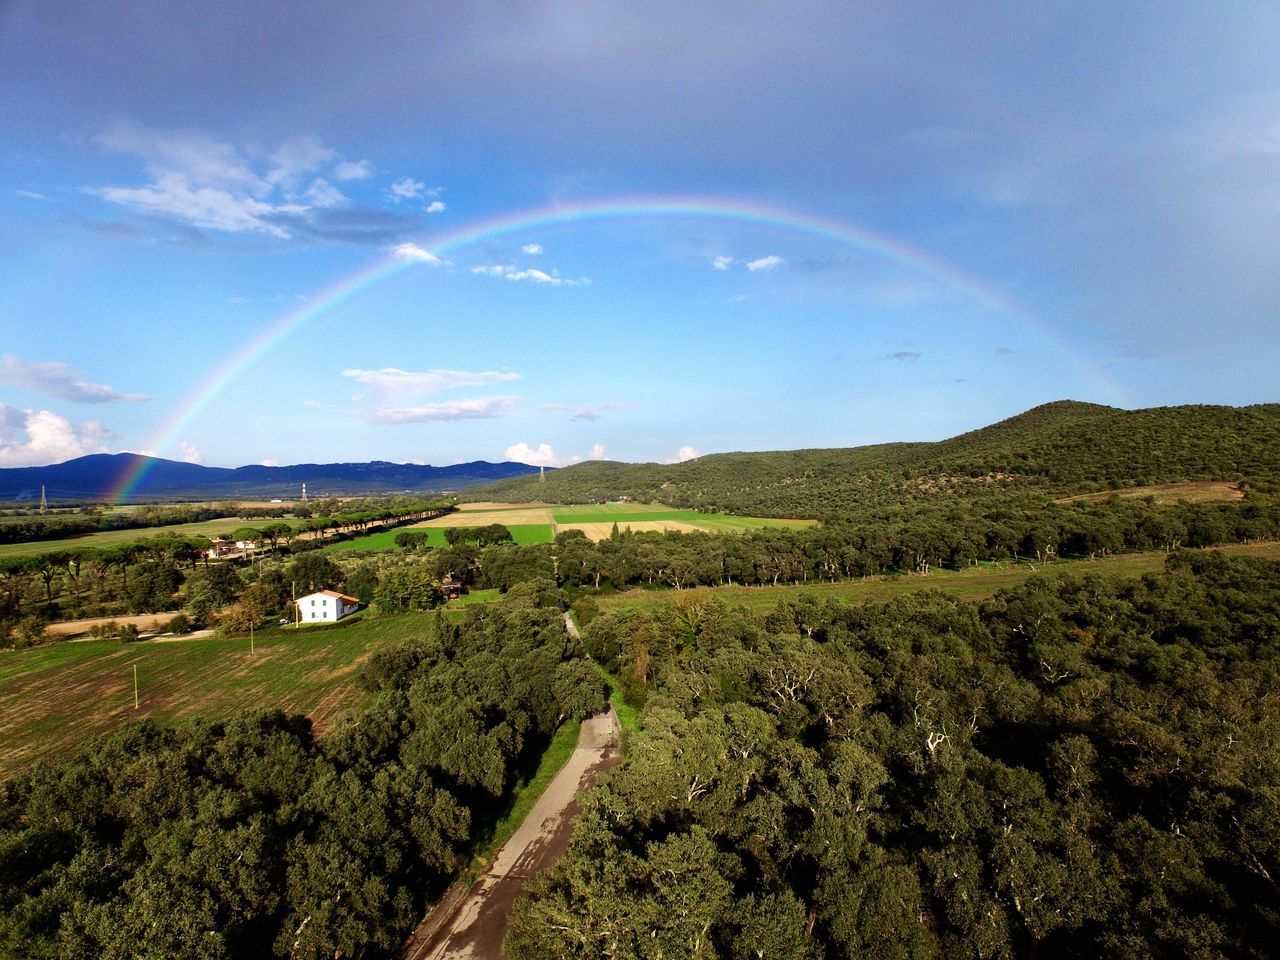 DJI Phantom 3 Professional Drone  Dronephotography Dji DJI Phantom 3 Pro Aerial Shot Aerial Photography Nature Nature_collection Nature Photography Nicola Nelli Sticciano Tuscany Maremma Toscana Bestoftheday Rainbow